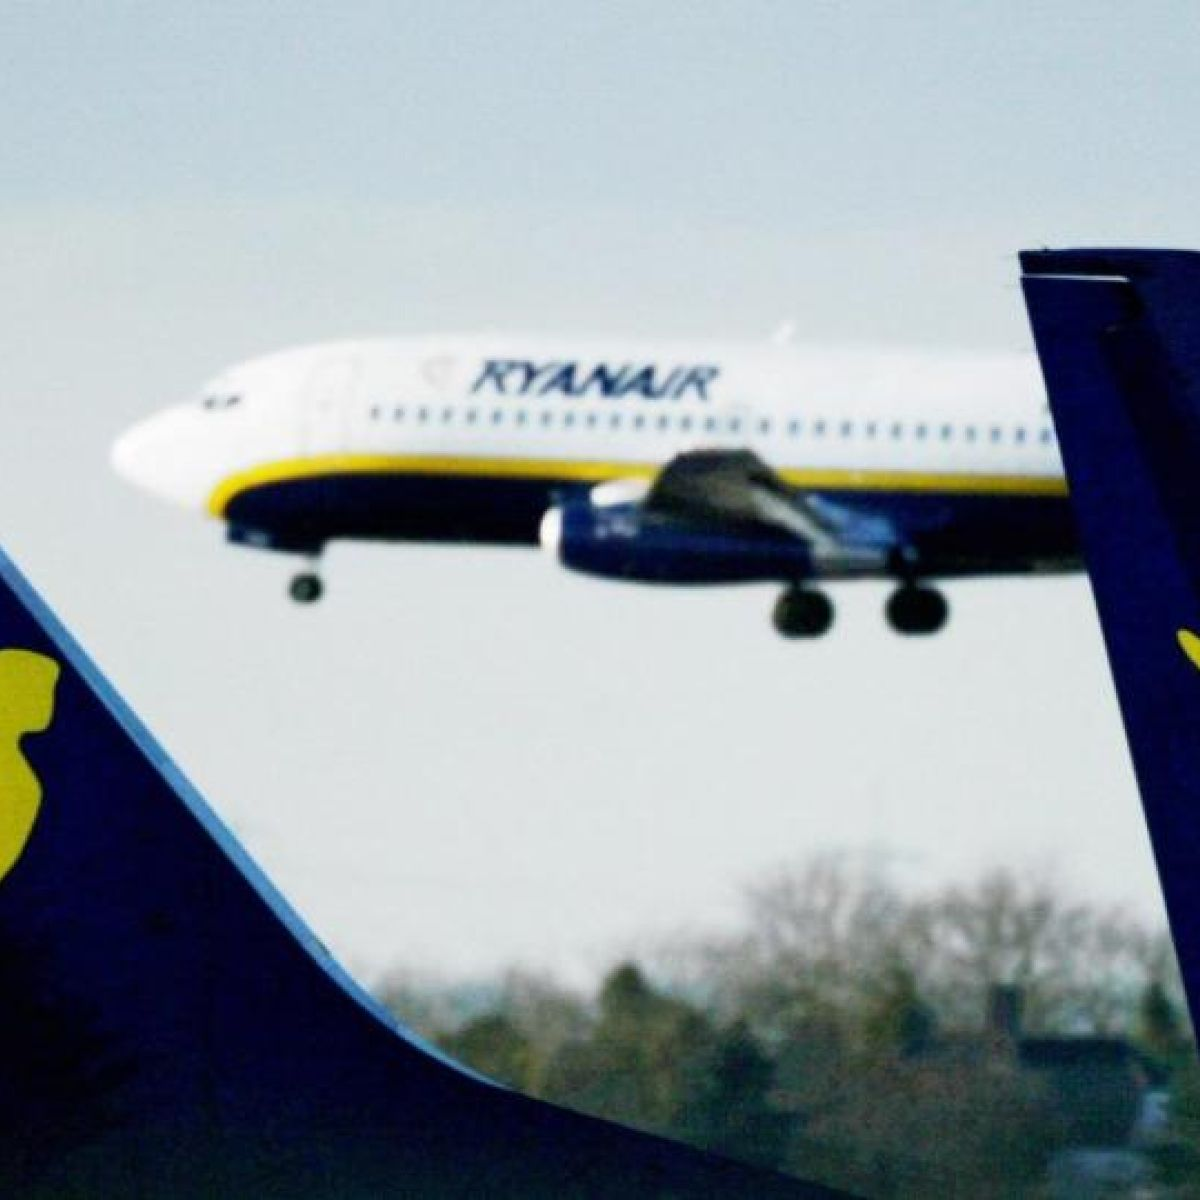 Significant damage' to Ryanair jet only discovered mid-flight